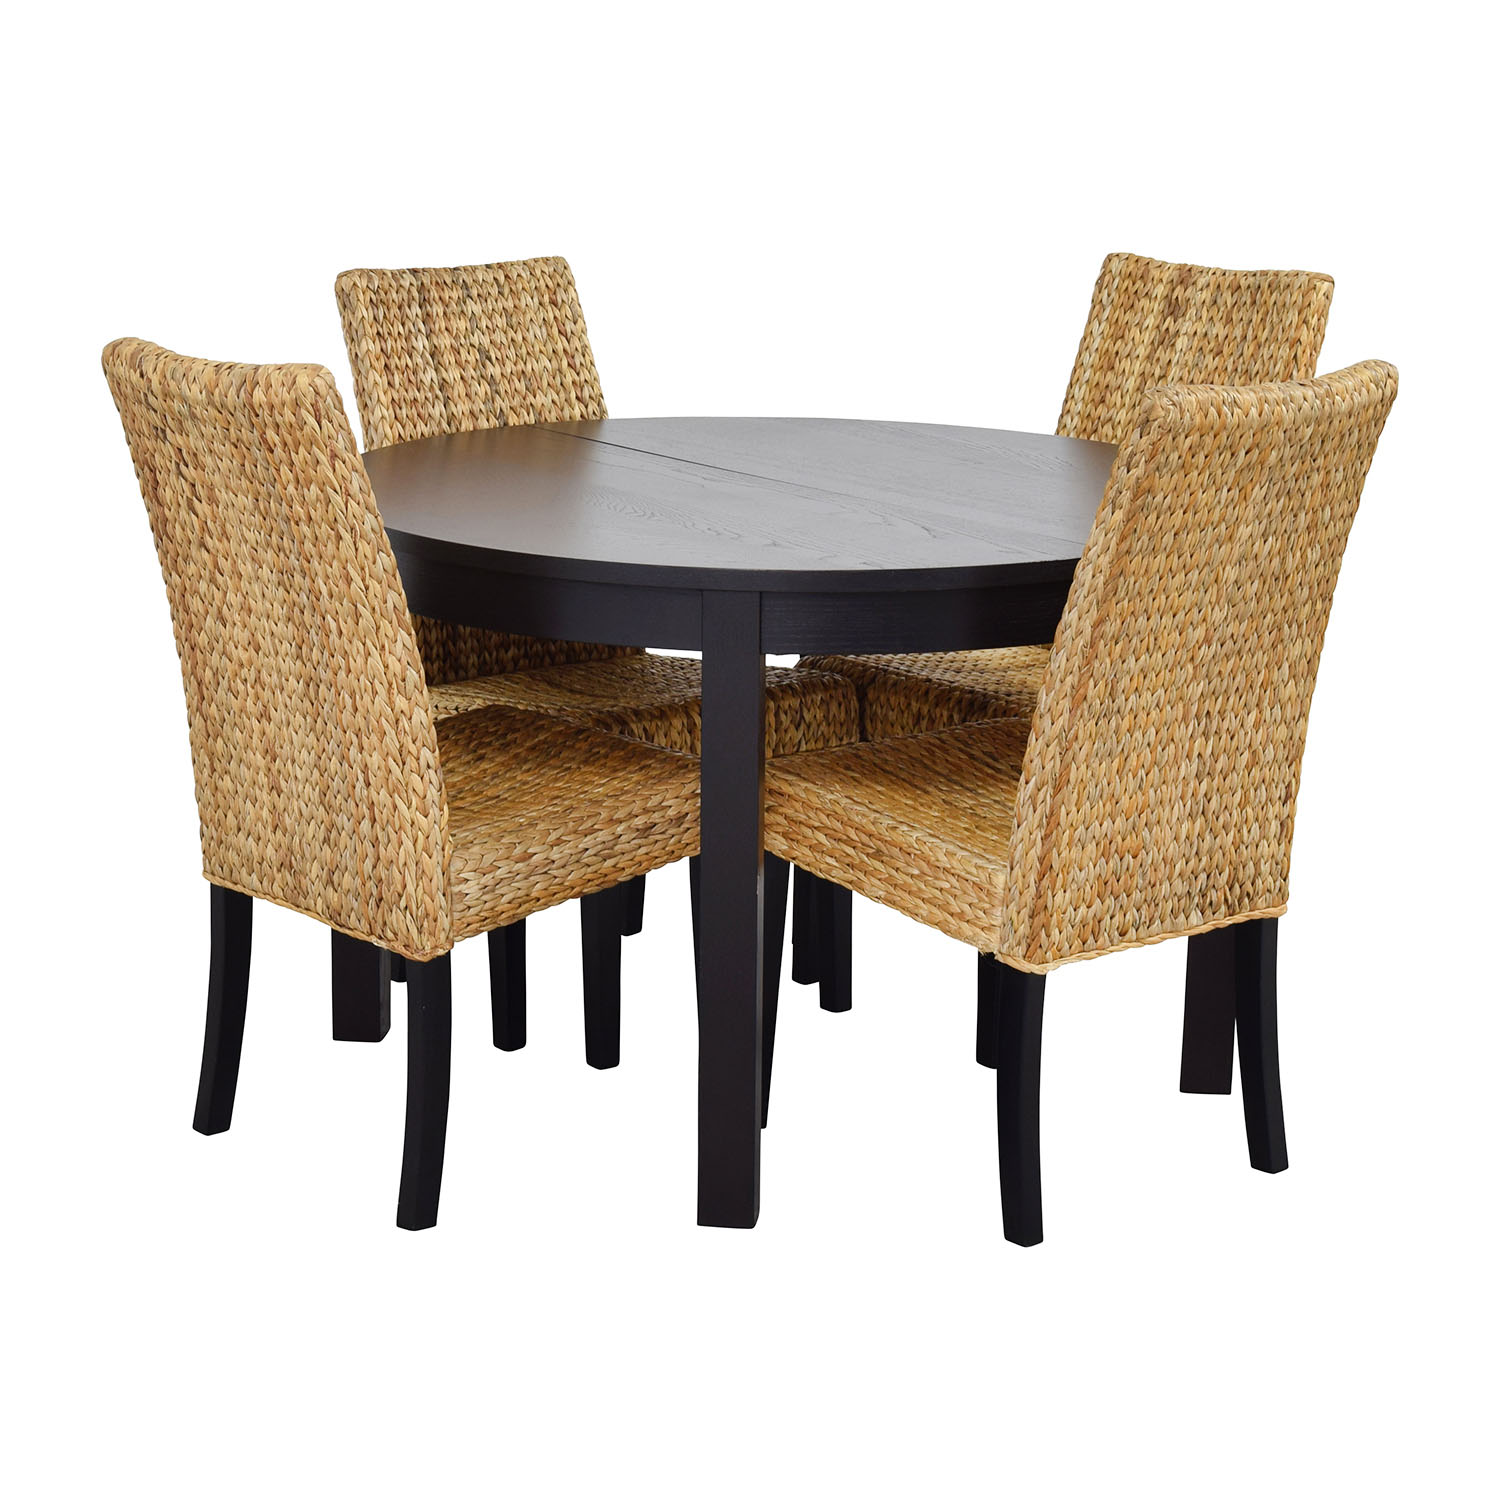 66 off macy 39 s ikea round black dining table set with for Round dining table set for 4